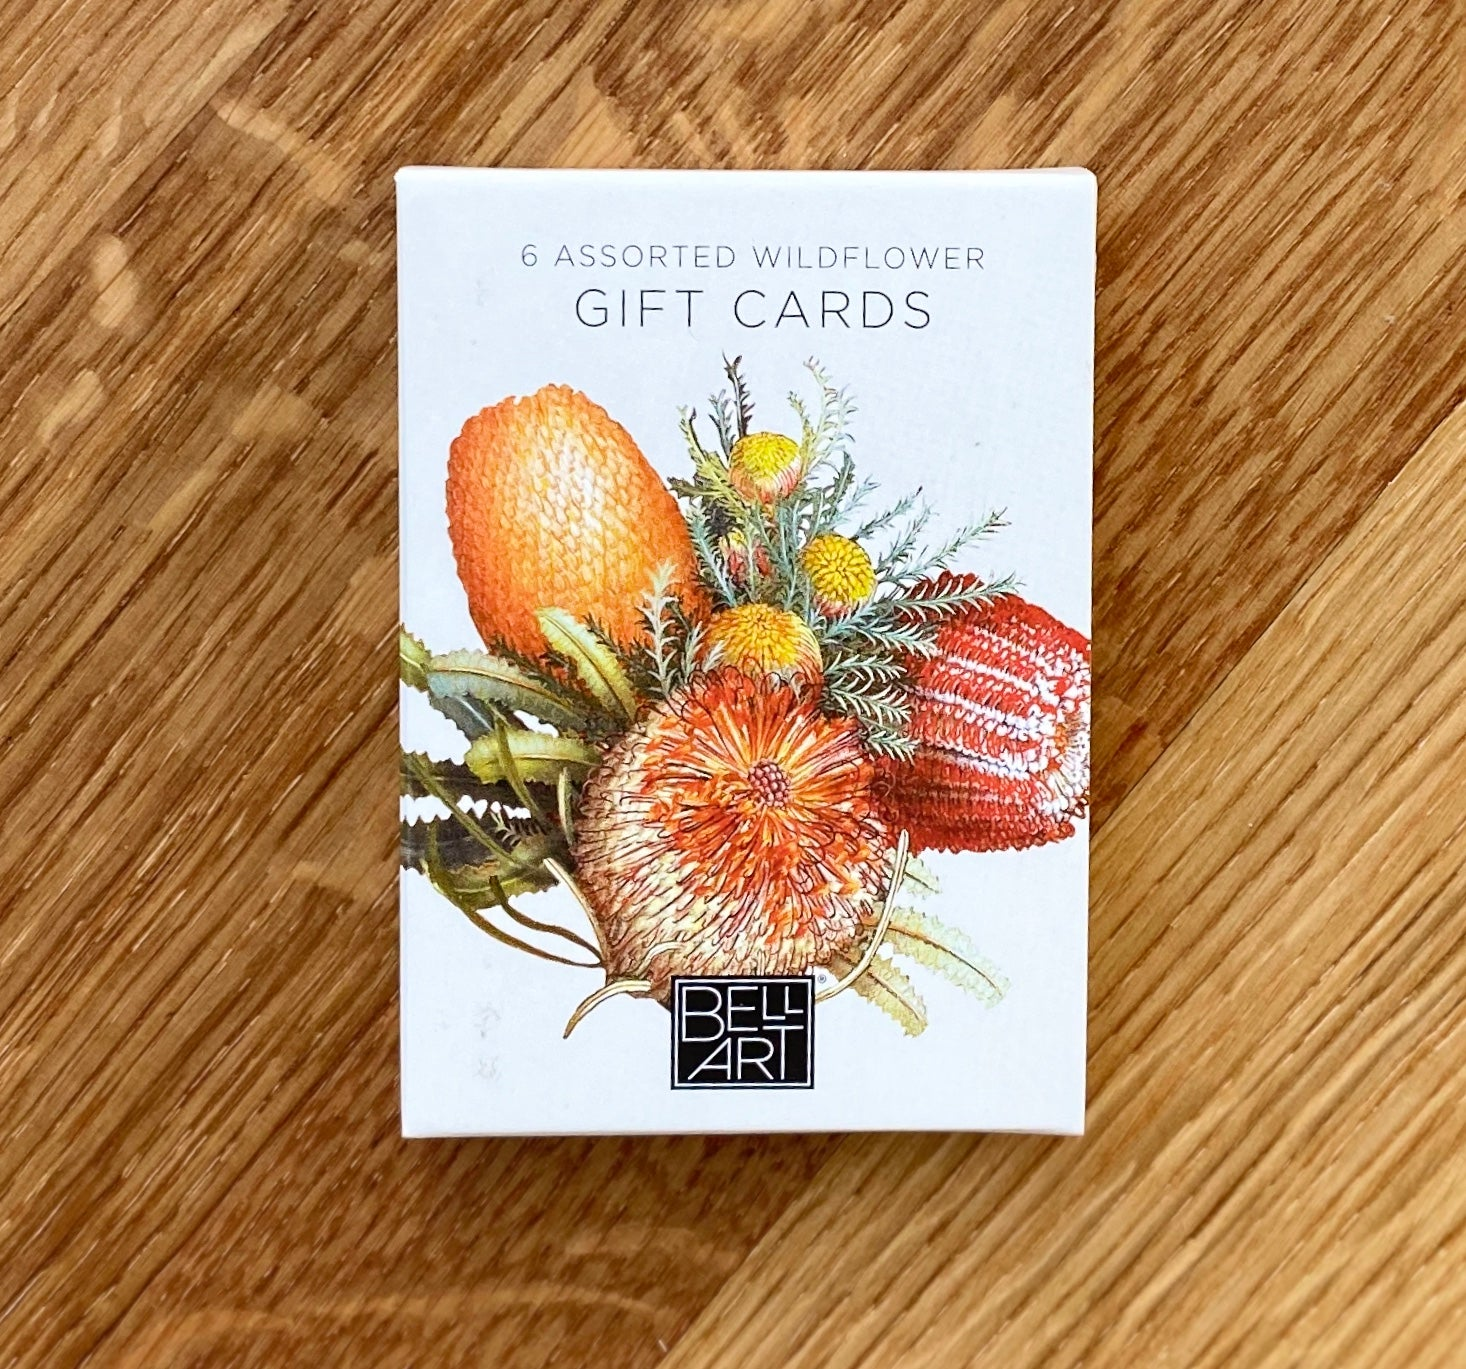 Wildflower Gift Cards